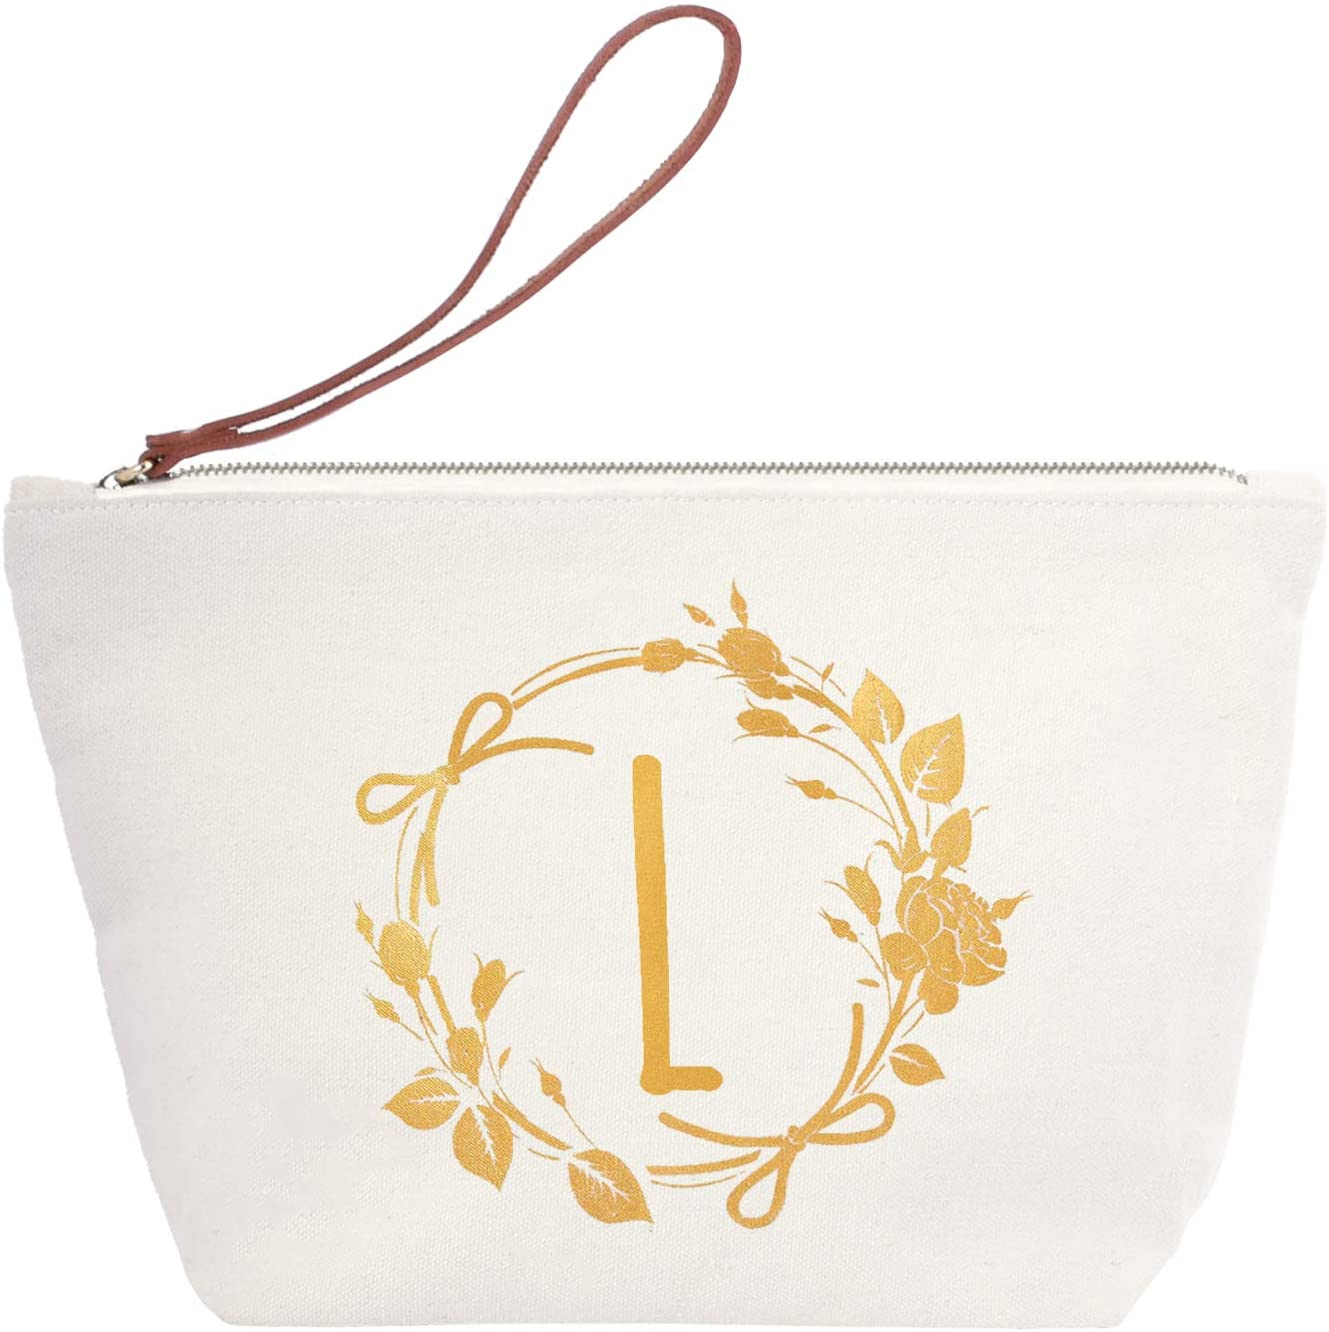 ElegantPark Monogrammed Gifts for Women Personalized Makeup Bag Monogram L Initial Makeup Bag for Wedding Gifts Birthday Gifts Teacher Gifts Cosmetic Bag Canvas